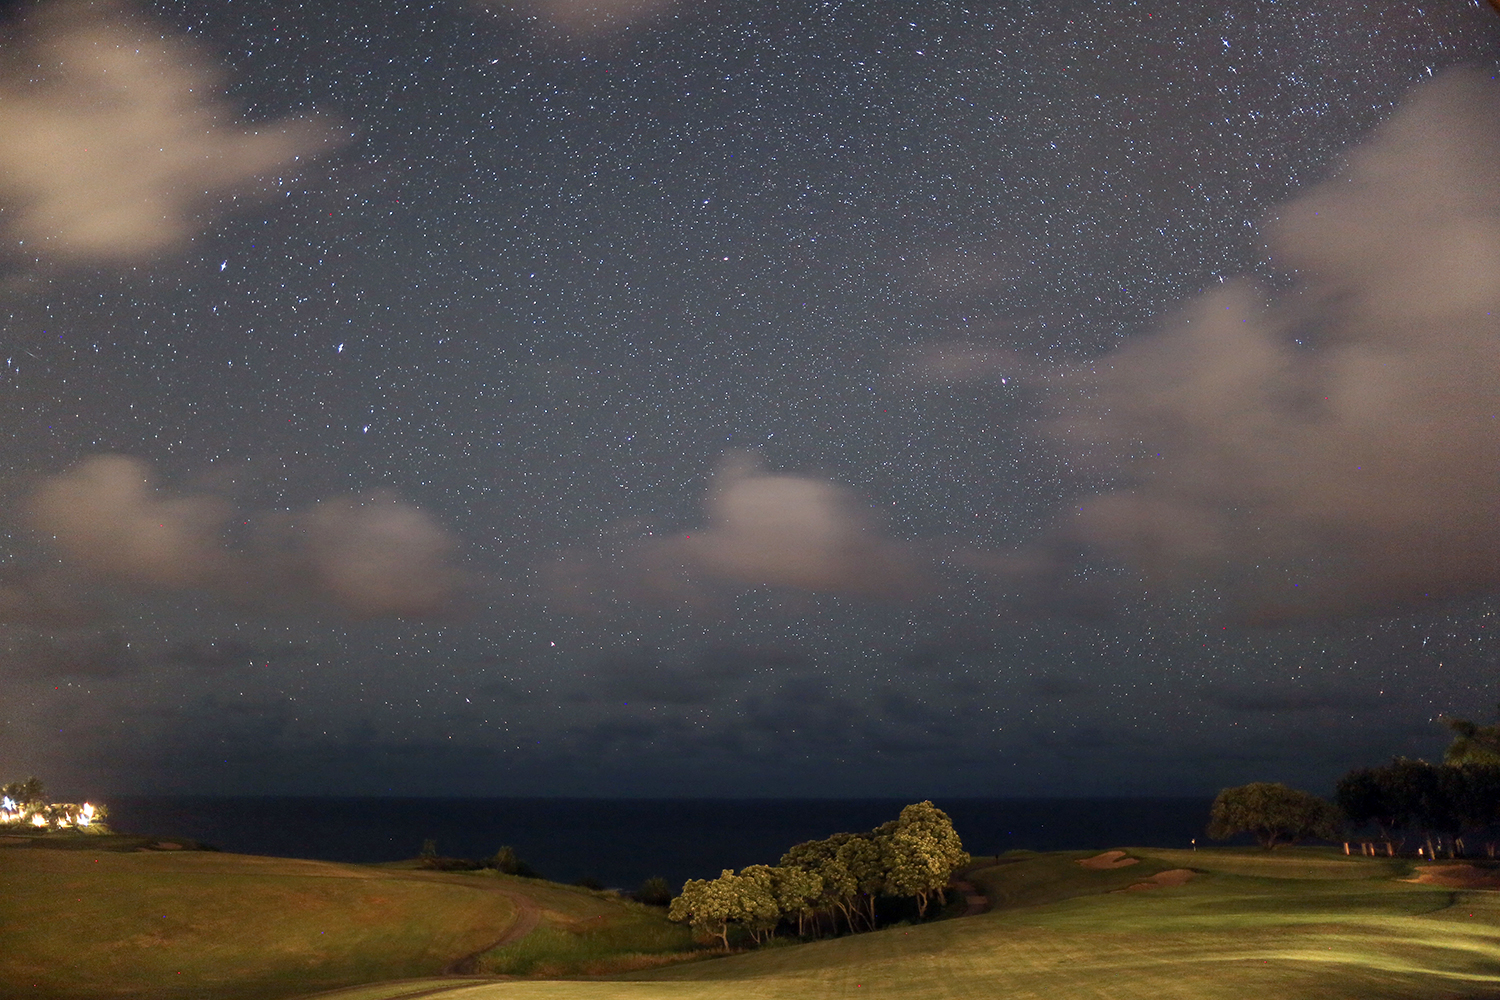 Beyond Basic Blog The Westin Princeville Hotel Review Starry Night Sky